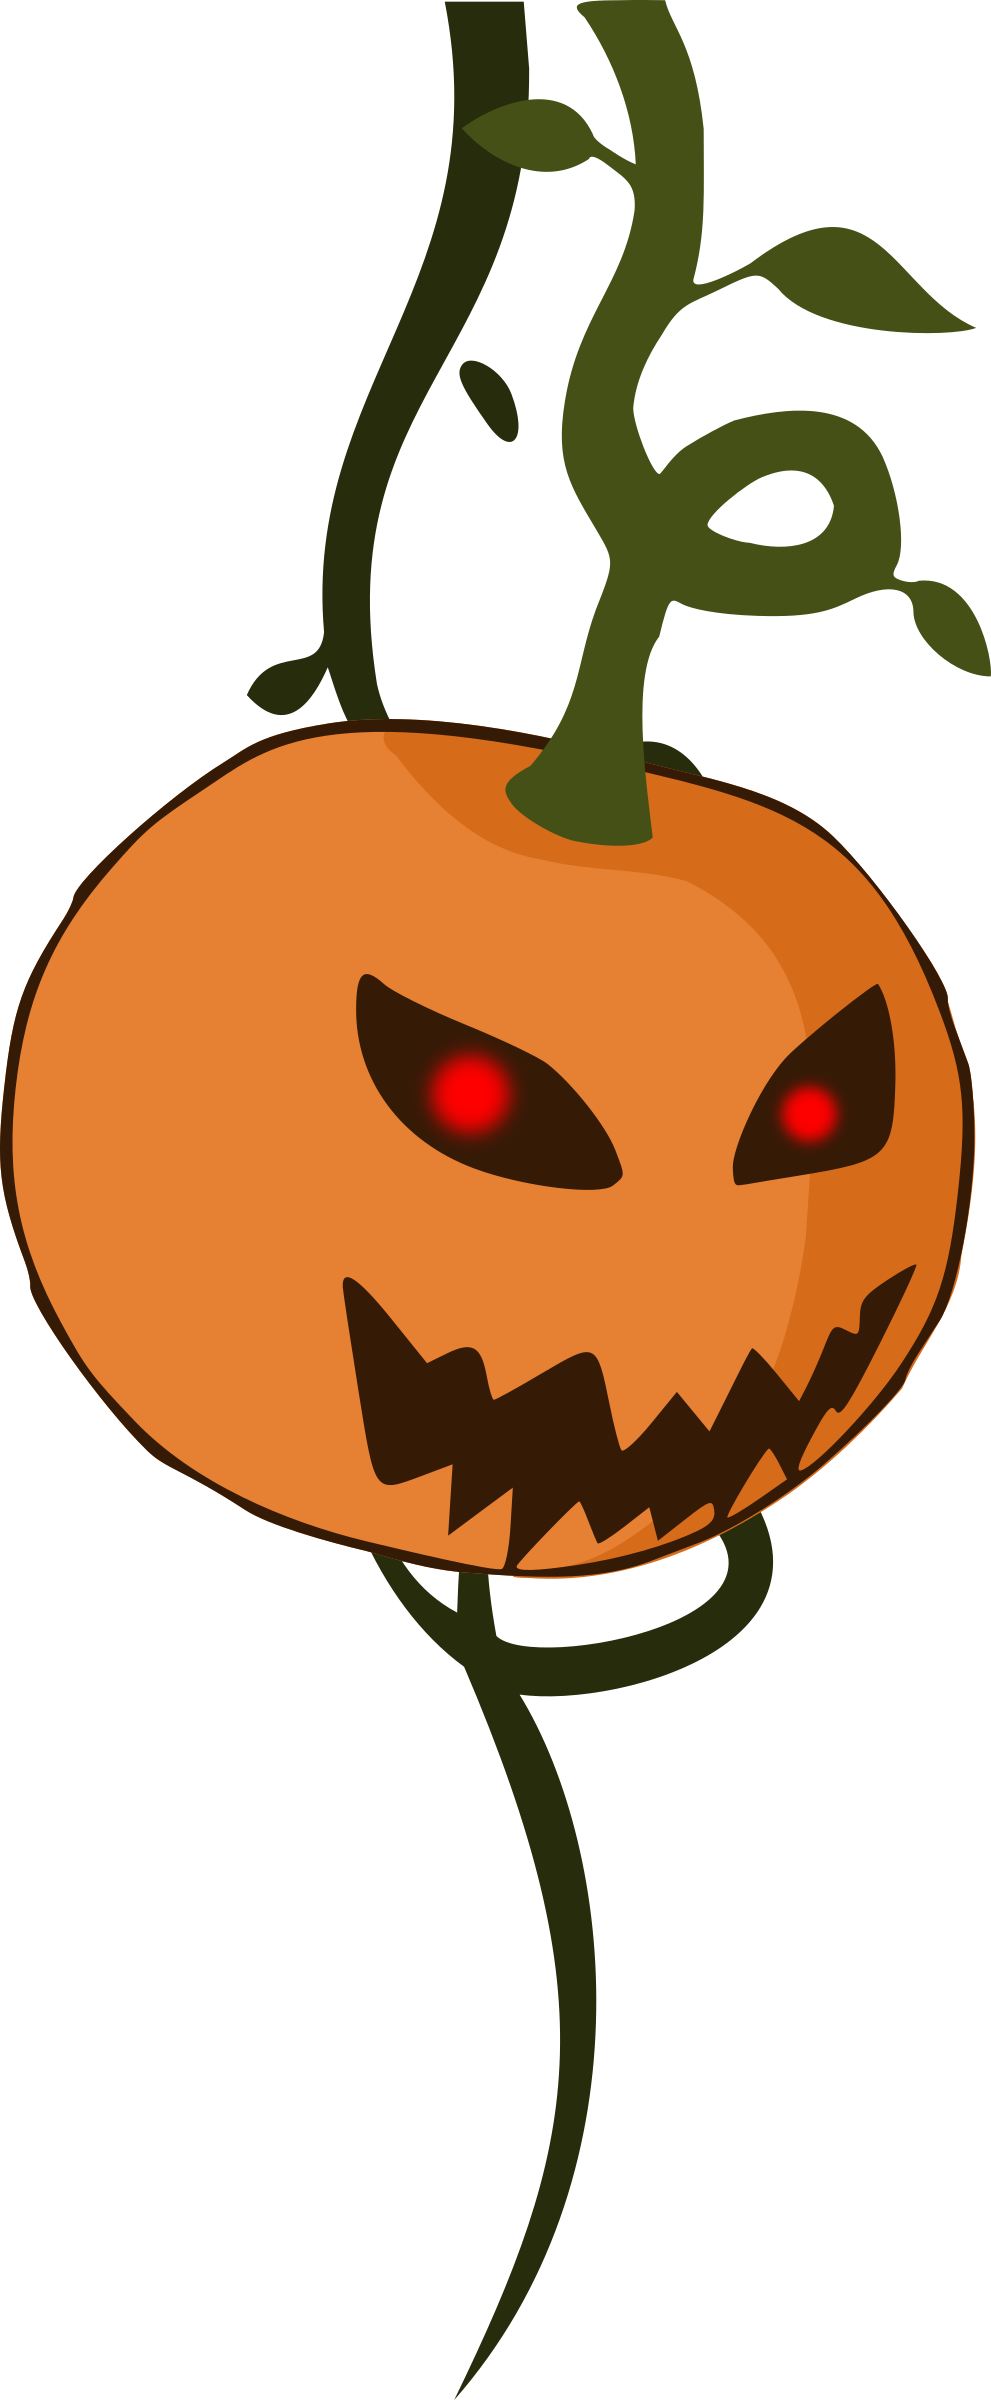 Cartoon jack-o'-lantern pumpkin by purzen